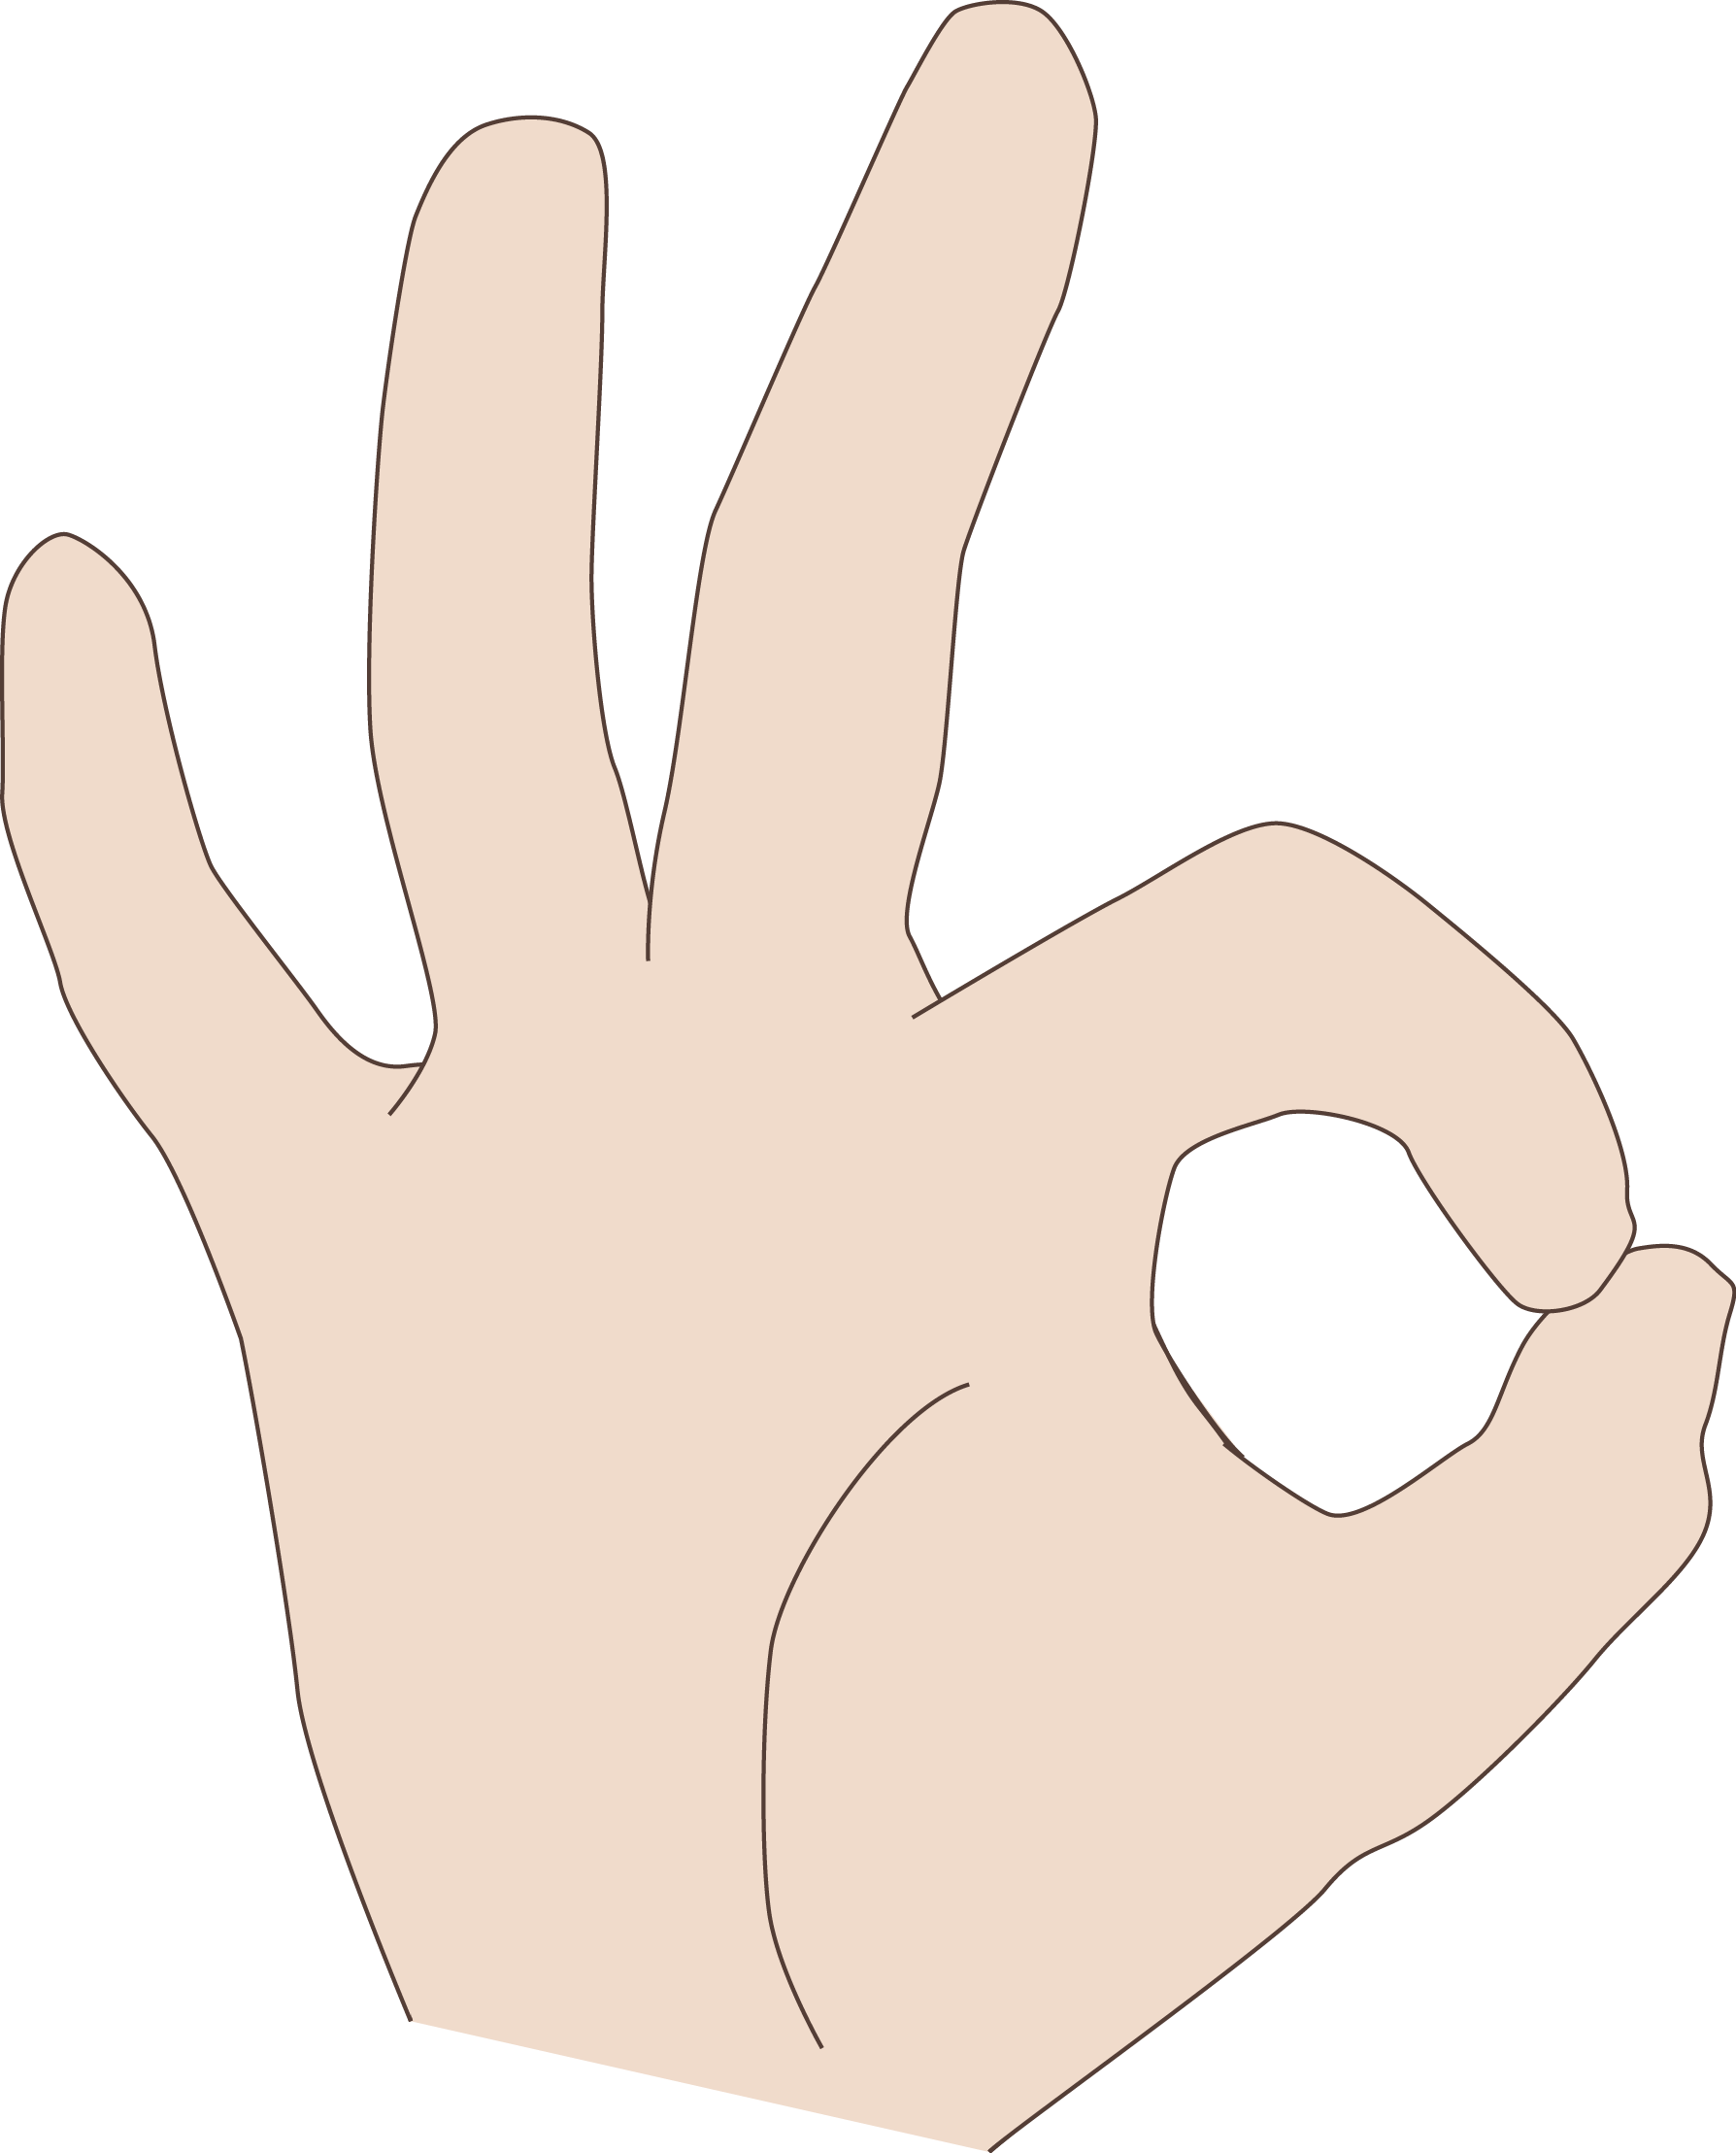 Finger clipart hand span. Coding manual iconic ok